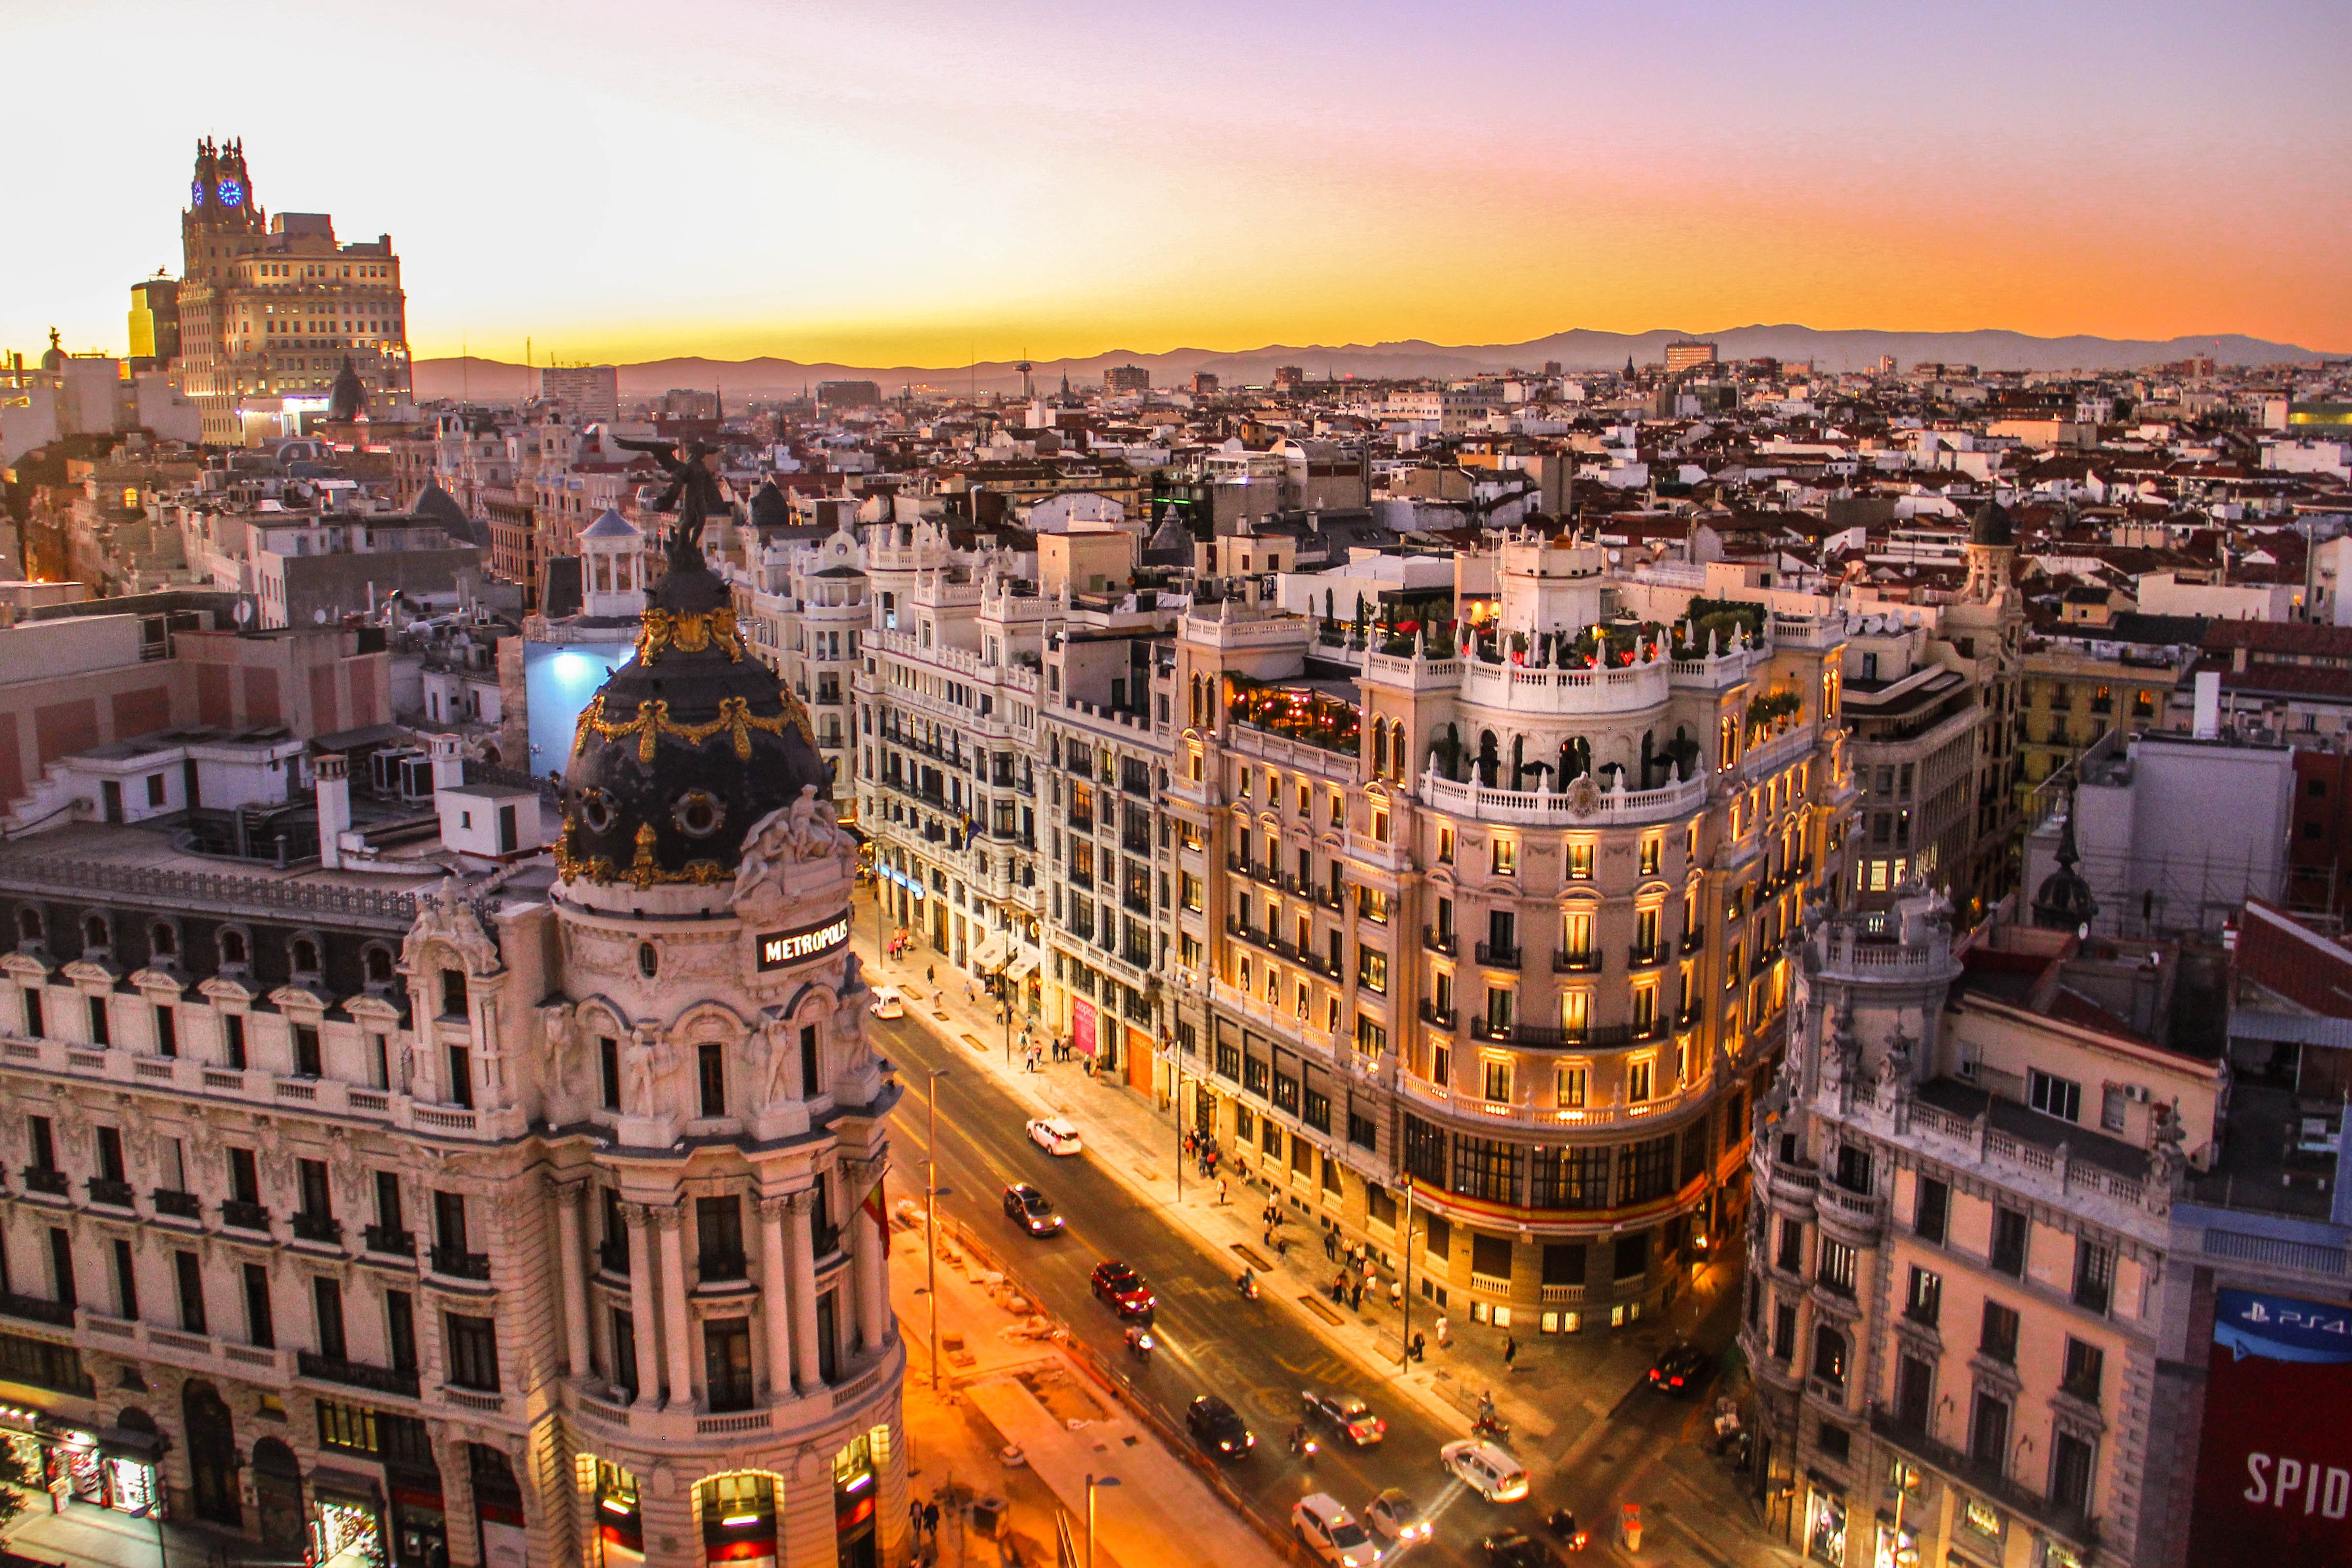 Madrid streets and skyline at sunset